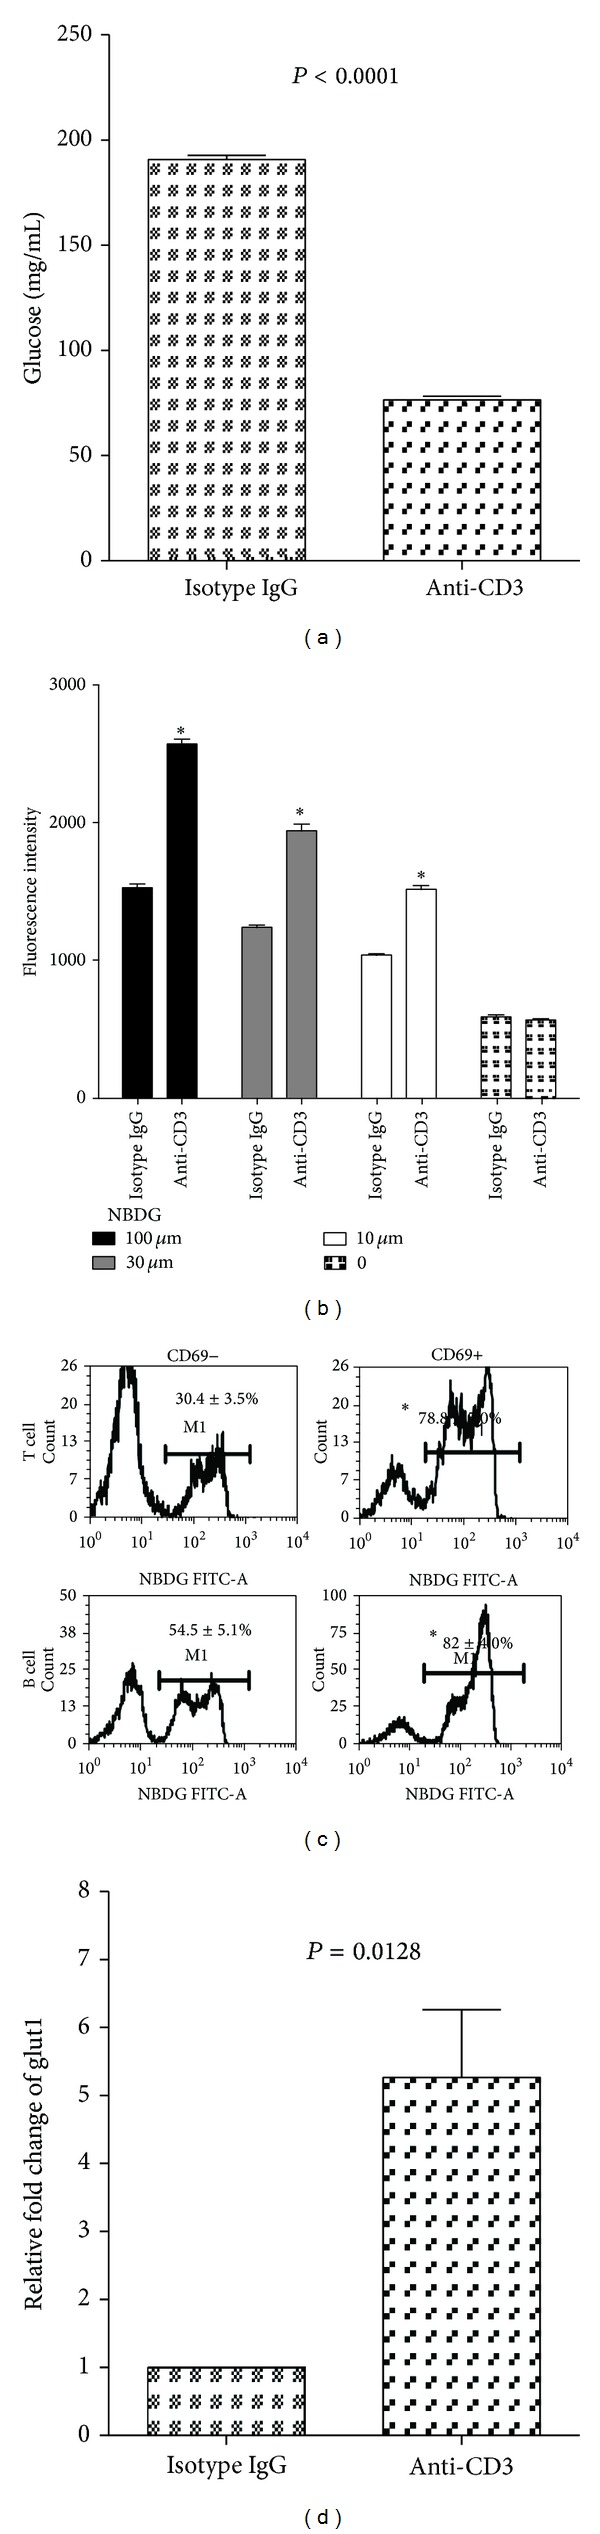 Anti-CD3 treatment enhances glucose intracellular transportation by the activated lymphocytes. (a) Freshly prepared spleen cells (1 × 10 7 /well) were cultured in a 24-well plate in 1 mL medium containing 10% fetal bovine serum with glucose concentration of 360 mg/dL. Anti-CD3 antibody (3 μ g/mL) or isotype IgG (3 μ g/mL) was added to the cultures. The culture wells were quadruplicated and incubated for 24 h. Glucose concentrations were measured before and 24 h after incubation. The results were reproduced in additional two independent experiments. (b) Freshly prepared spleen cells were stimulated with anti-CD3 antibody (3 μ g/mL) or isotype IgG (3 μ g/mL) for 3 hours; thereafter, different concentrations of 2-NBDG as indicated were added to the cultures for additional 2 hours. The fluorescent intensity of the cells was examined by BioTec plate reader using a laser filter with 480 nm excitation and 528 nm emission. The values of between anti-CD3 and isotype IgG were compared for each concentration of 2-NBDG (* P